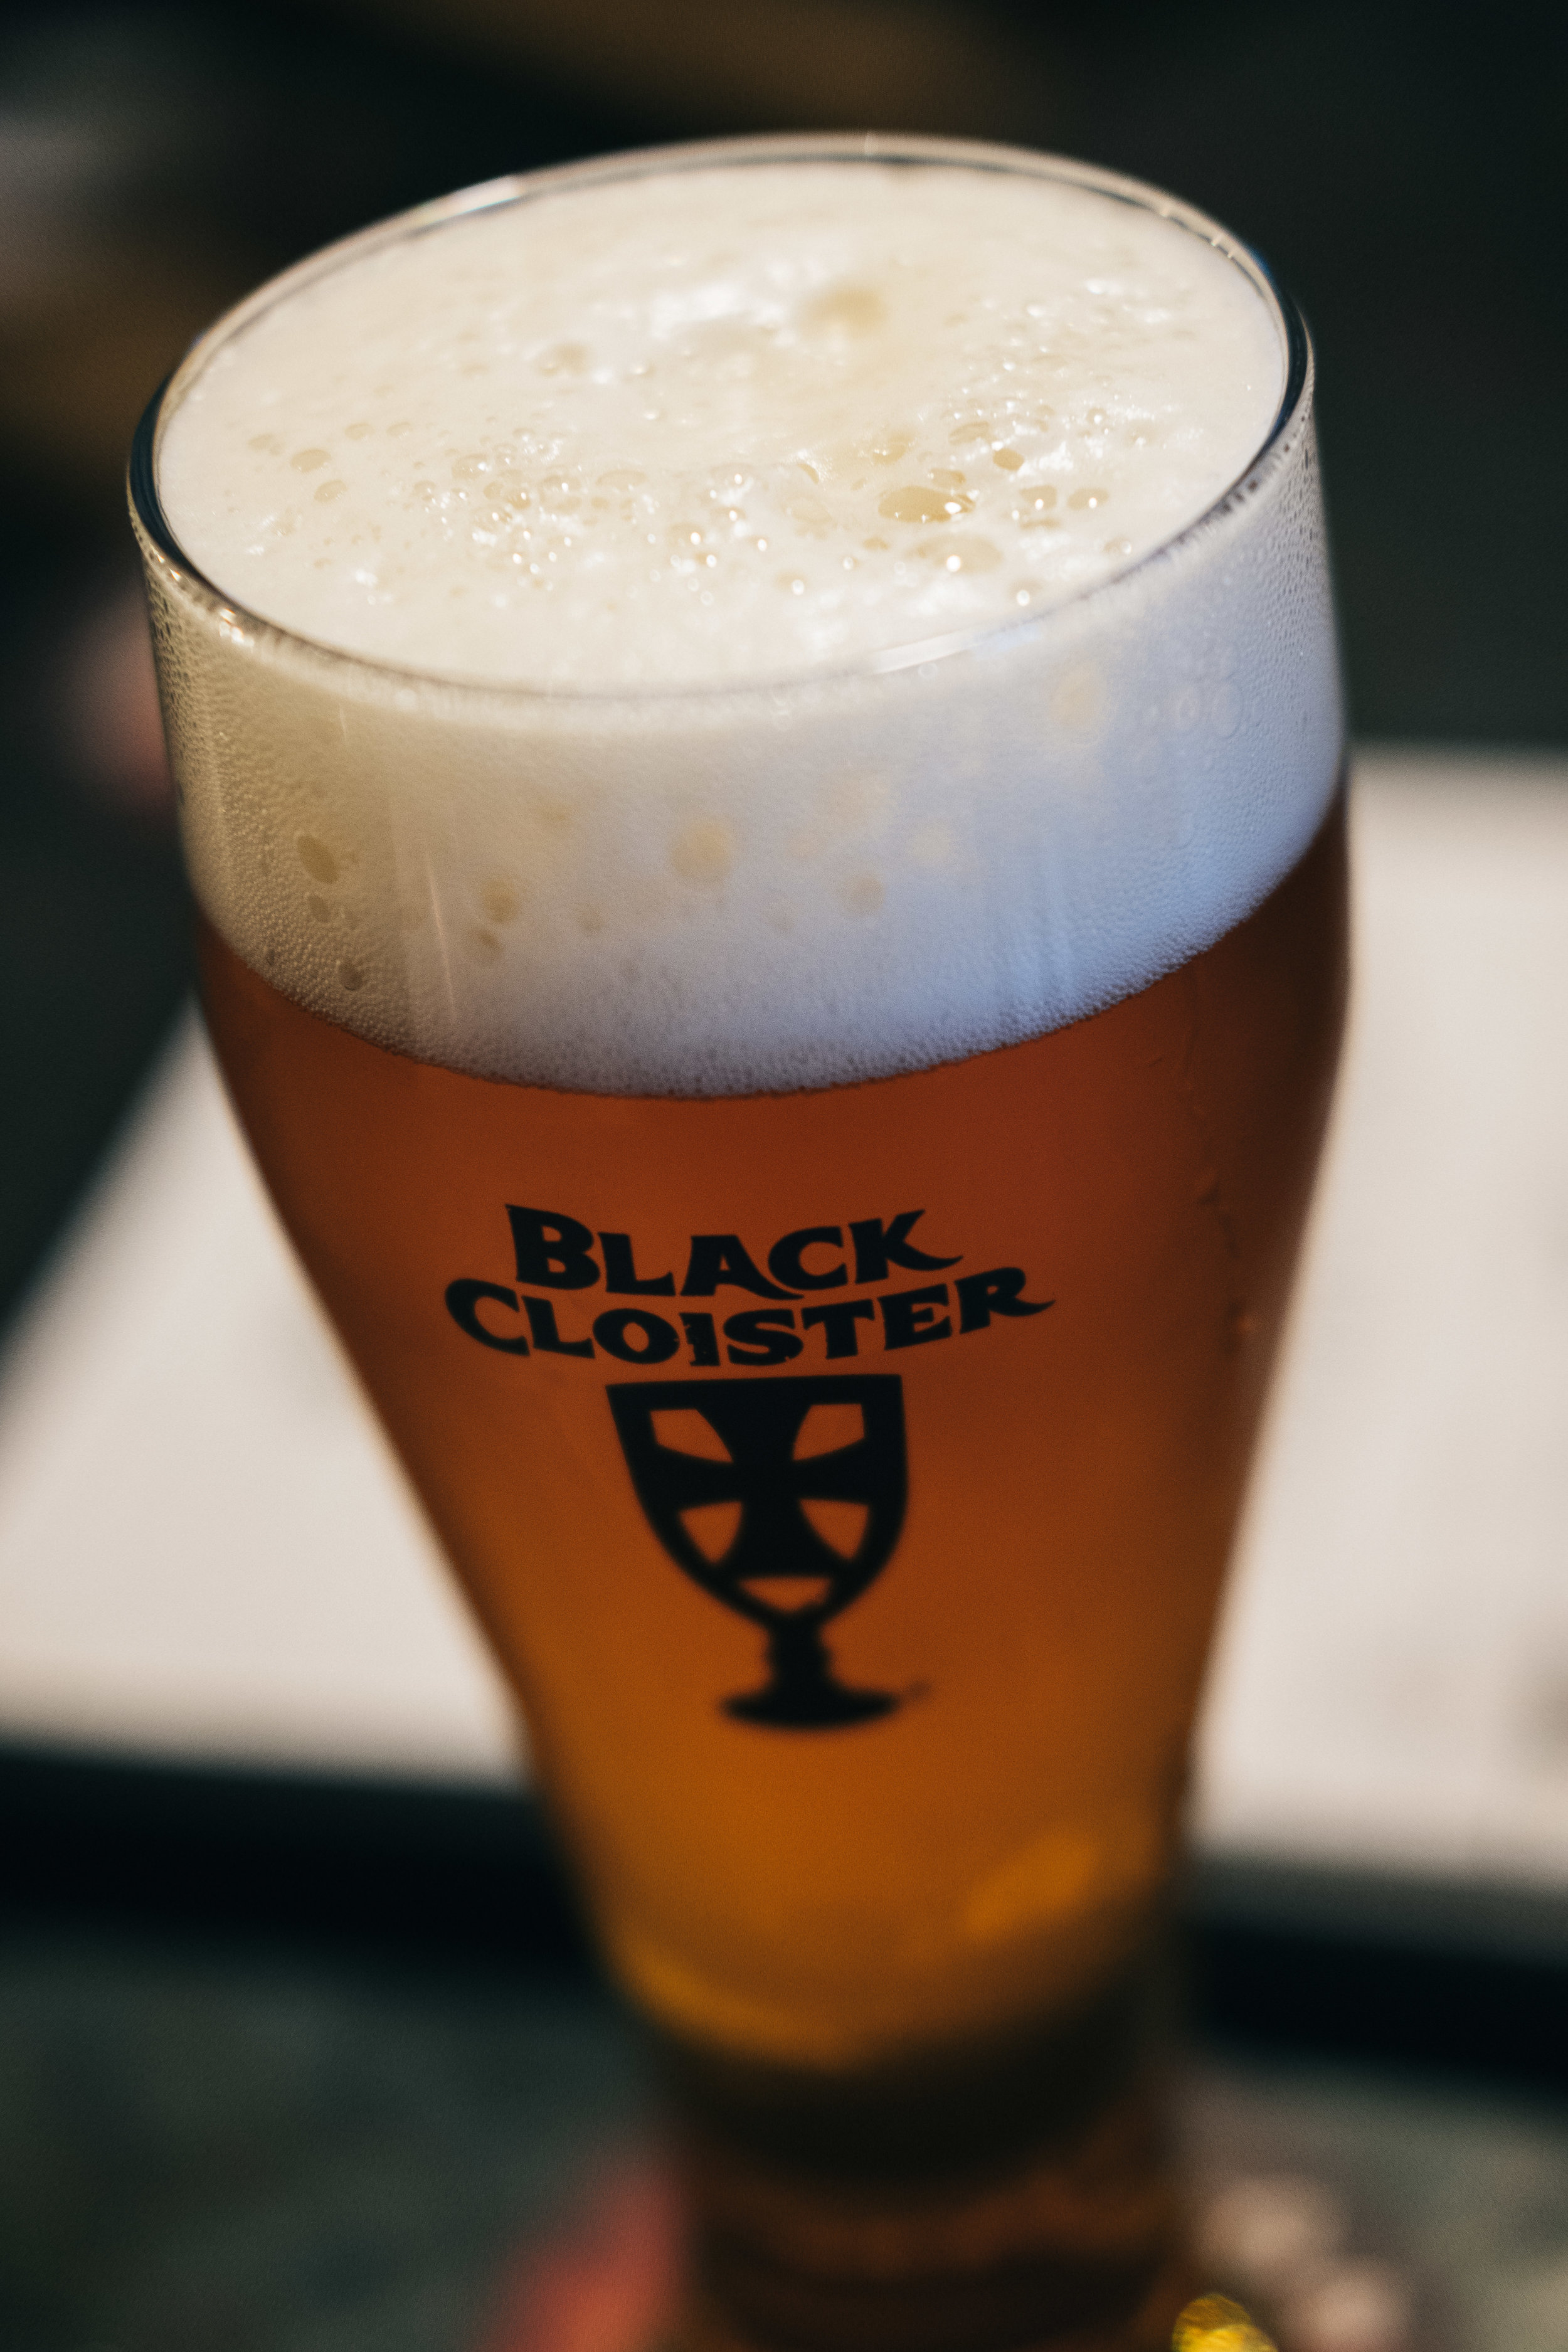 Black Cloister Beer in downtown Toledo for fall engagement session.